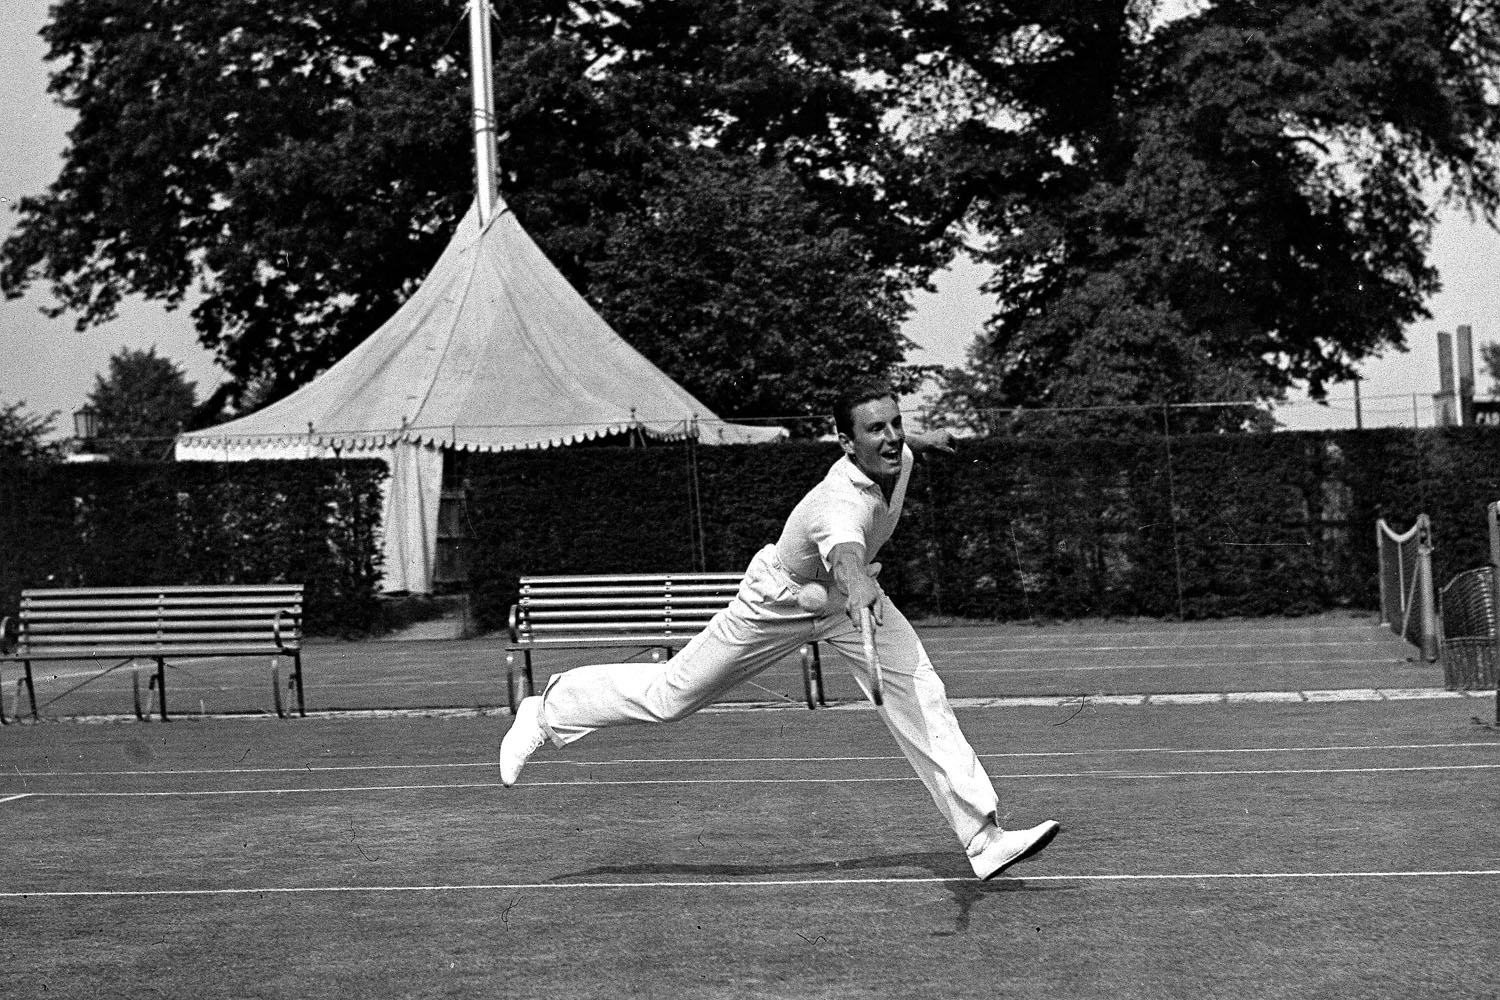 English tennis star Fred Perry training on Wimbledon grass courts in London, England on June 15, 1932.